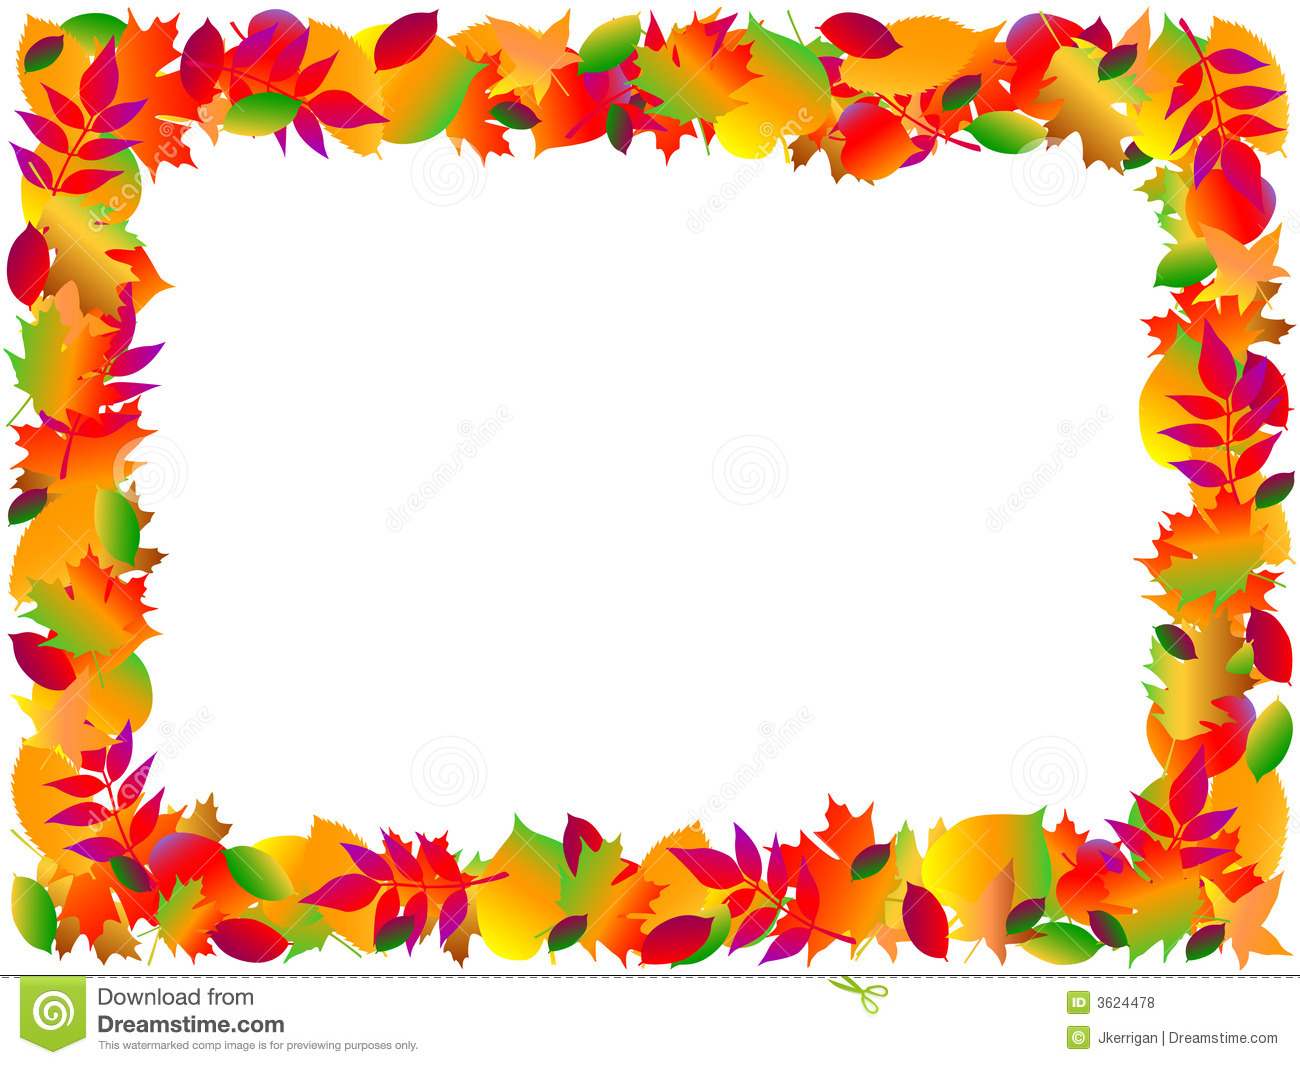 Fall Harvest Border Clipart - Clipart Kid